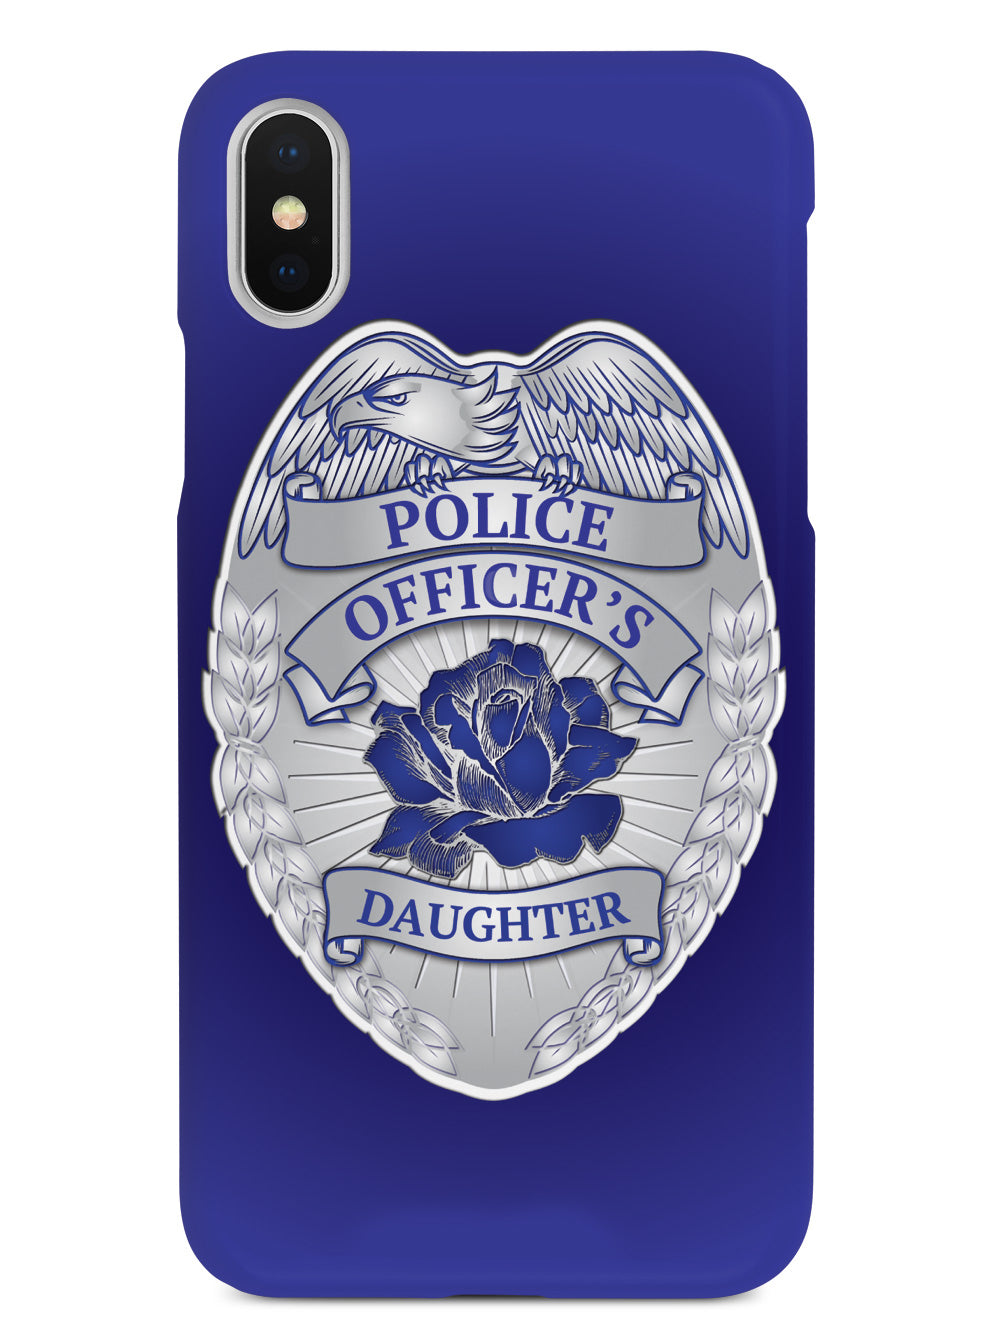 Police Officer's Daughter Badge Case